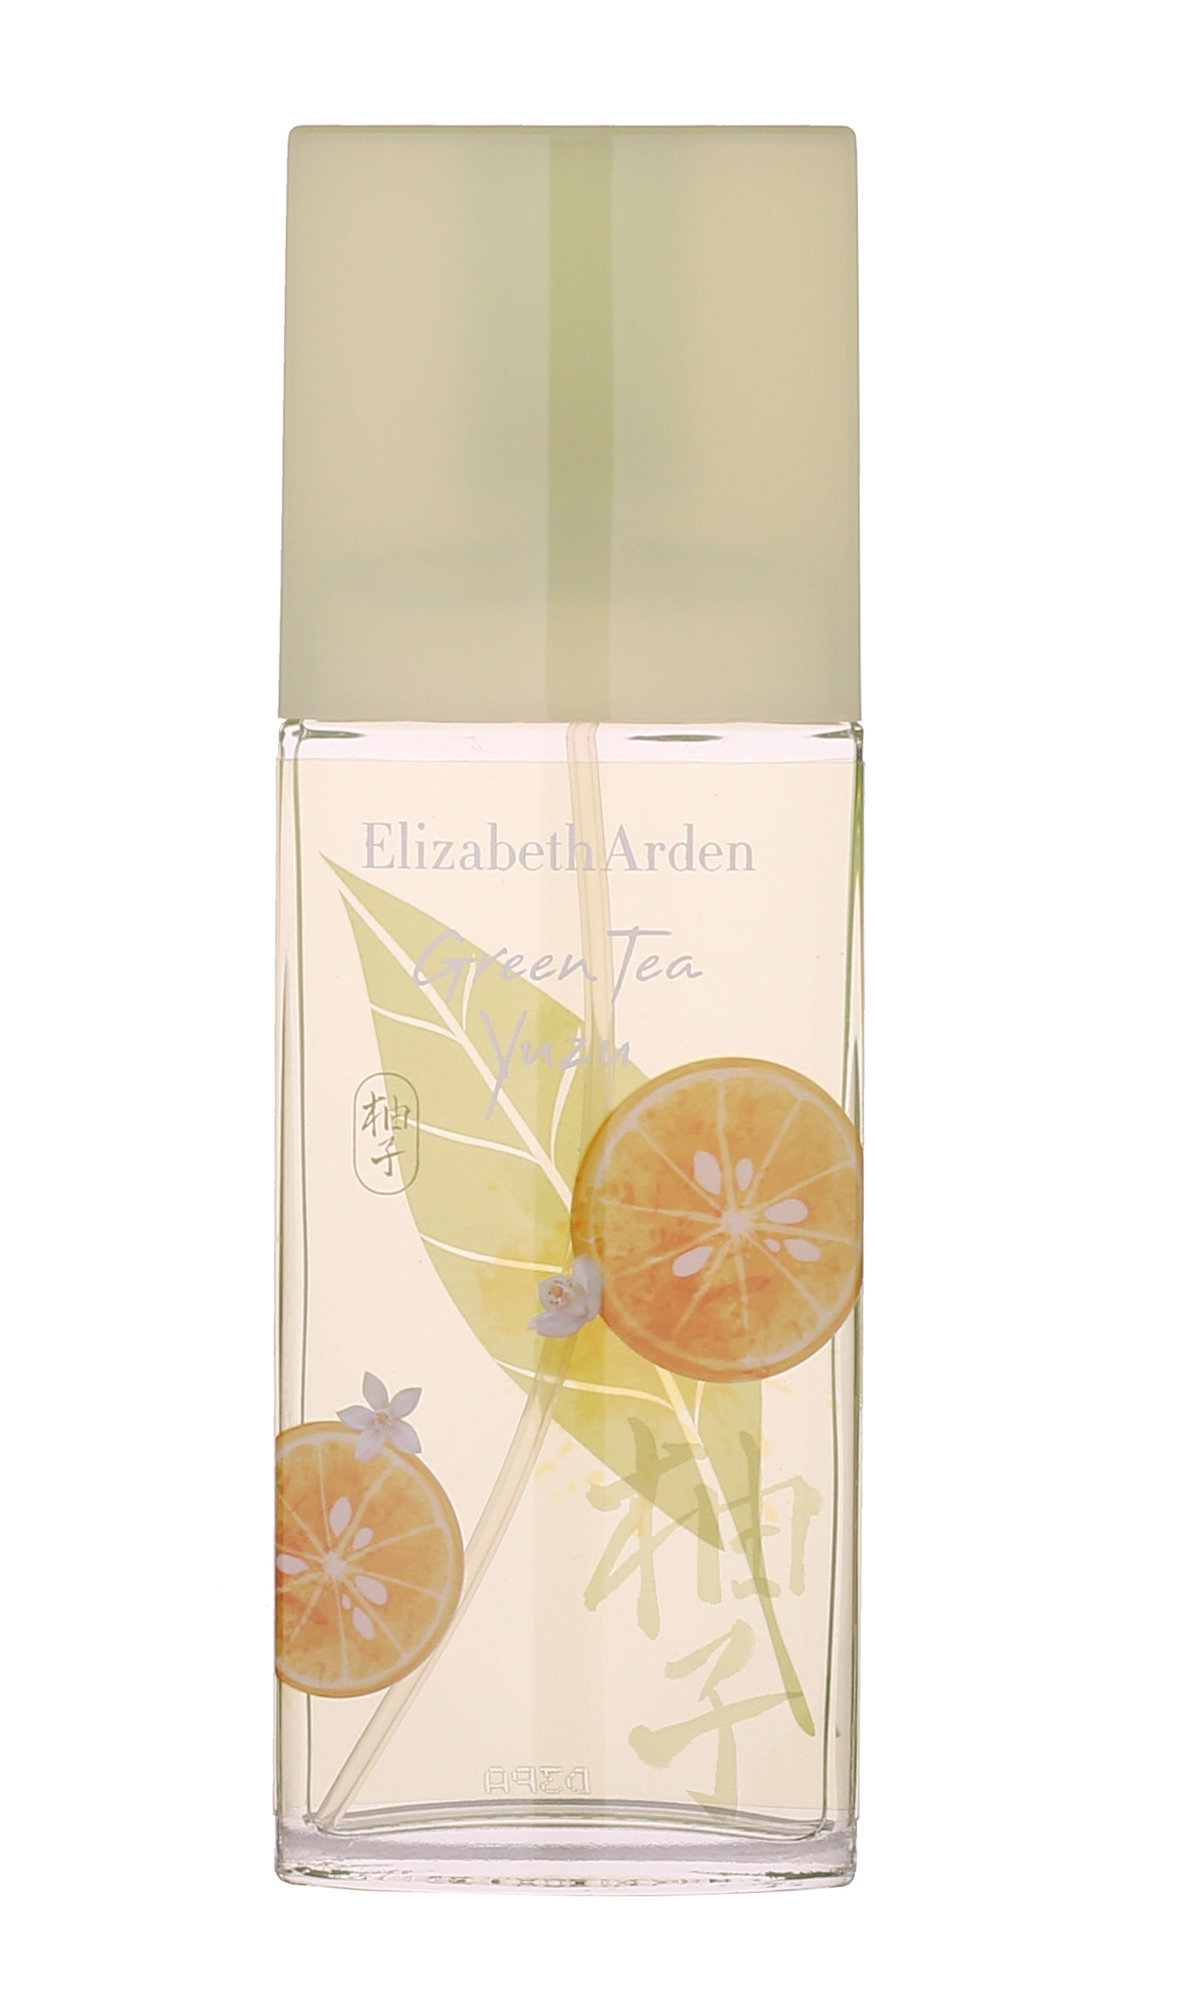 Elizabeth Arden Green Tea EDT 50ml